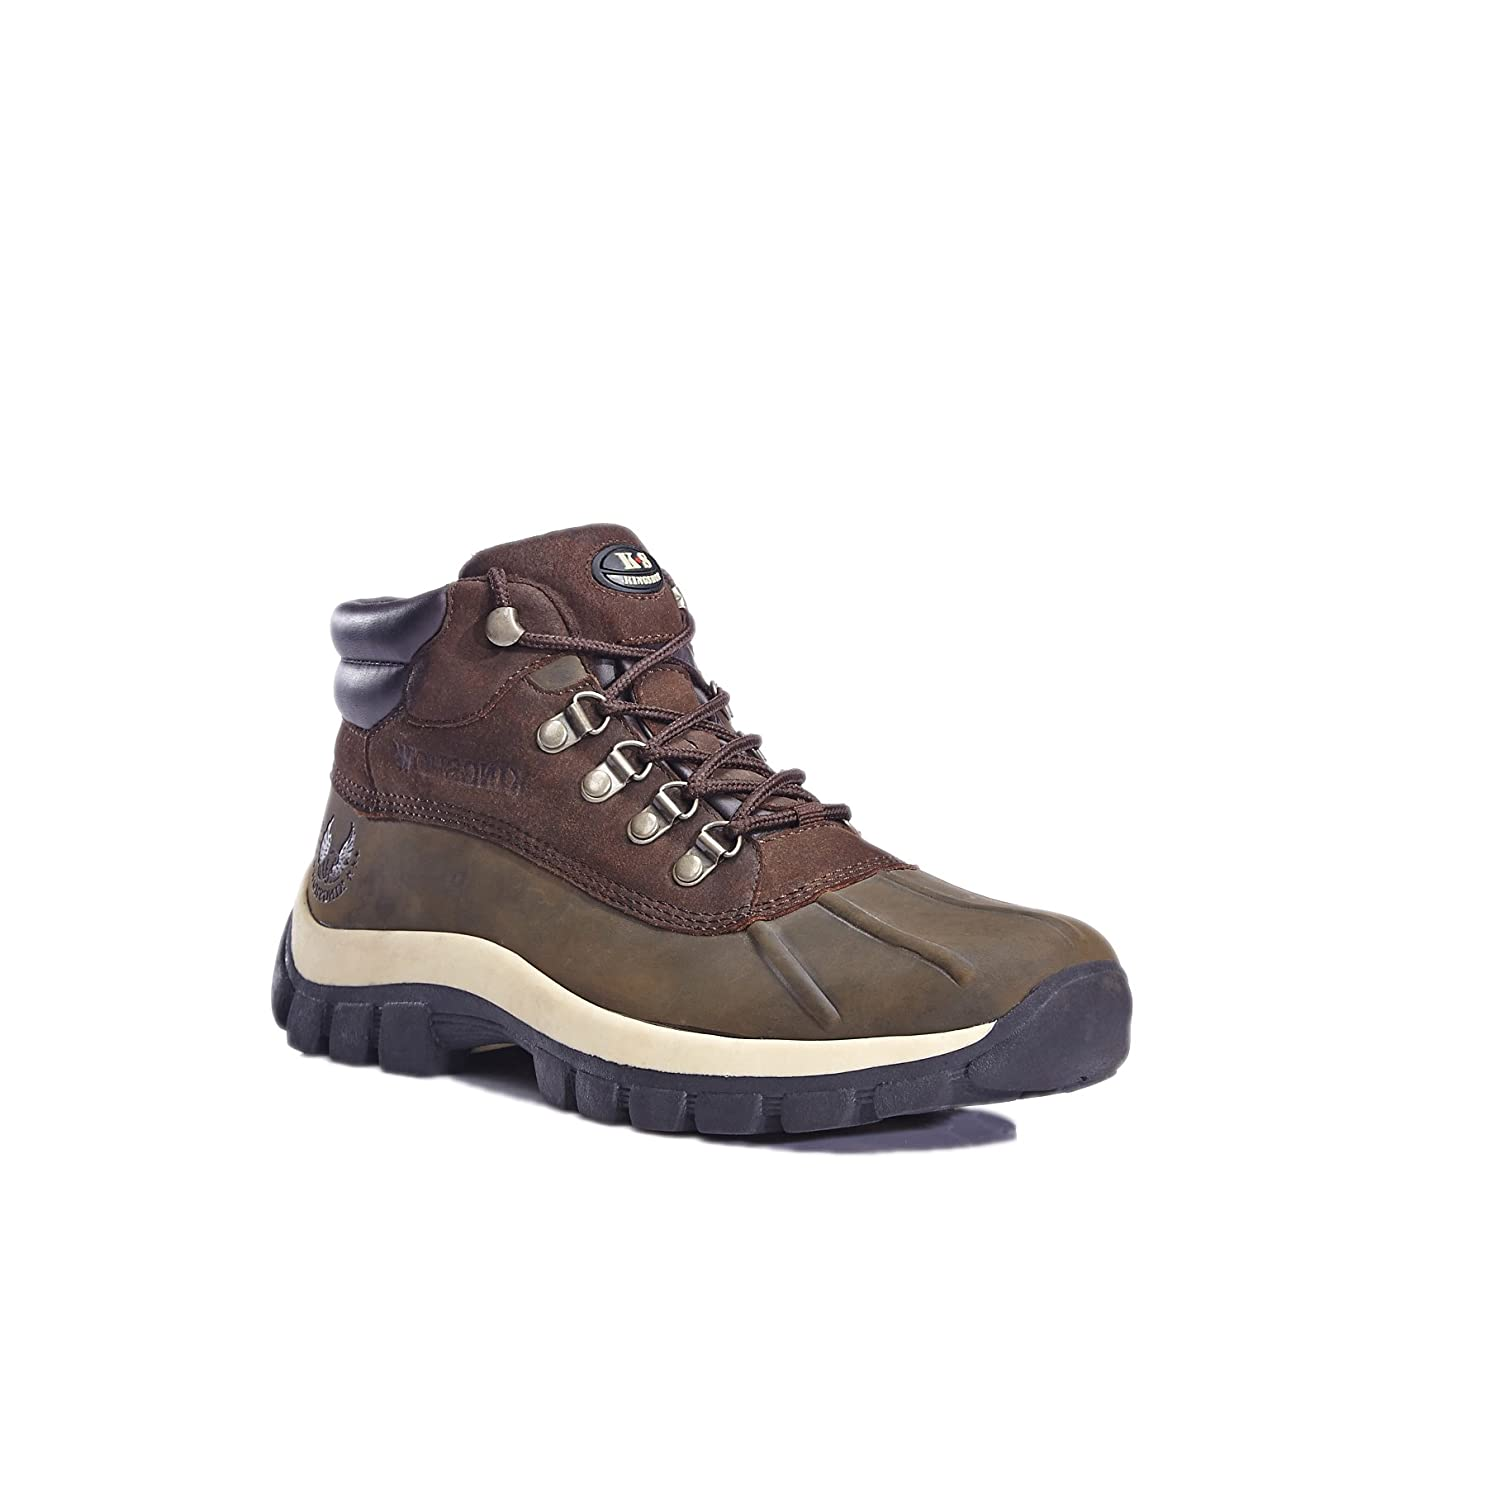 KINGSHOW - Mens M1280 Waterproof Rubber Sole Winter Snow KS-0705